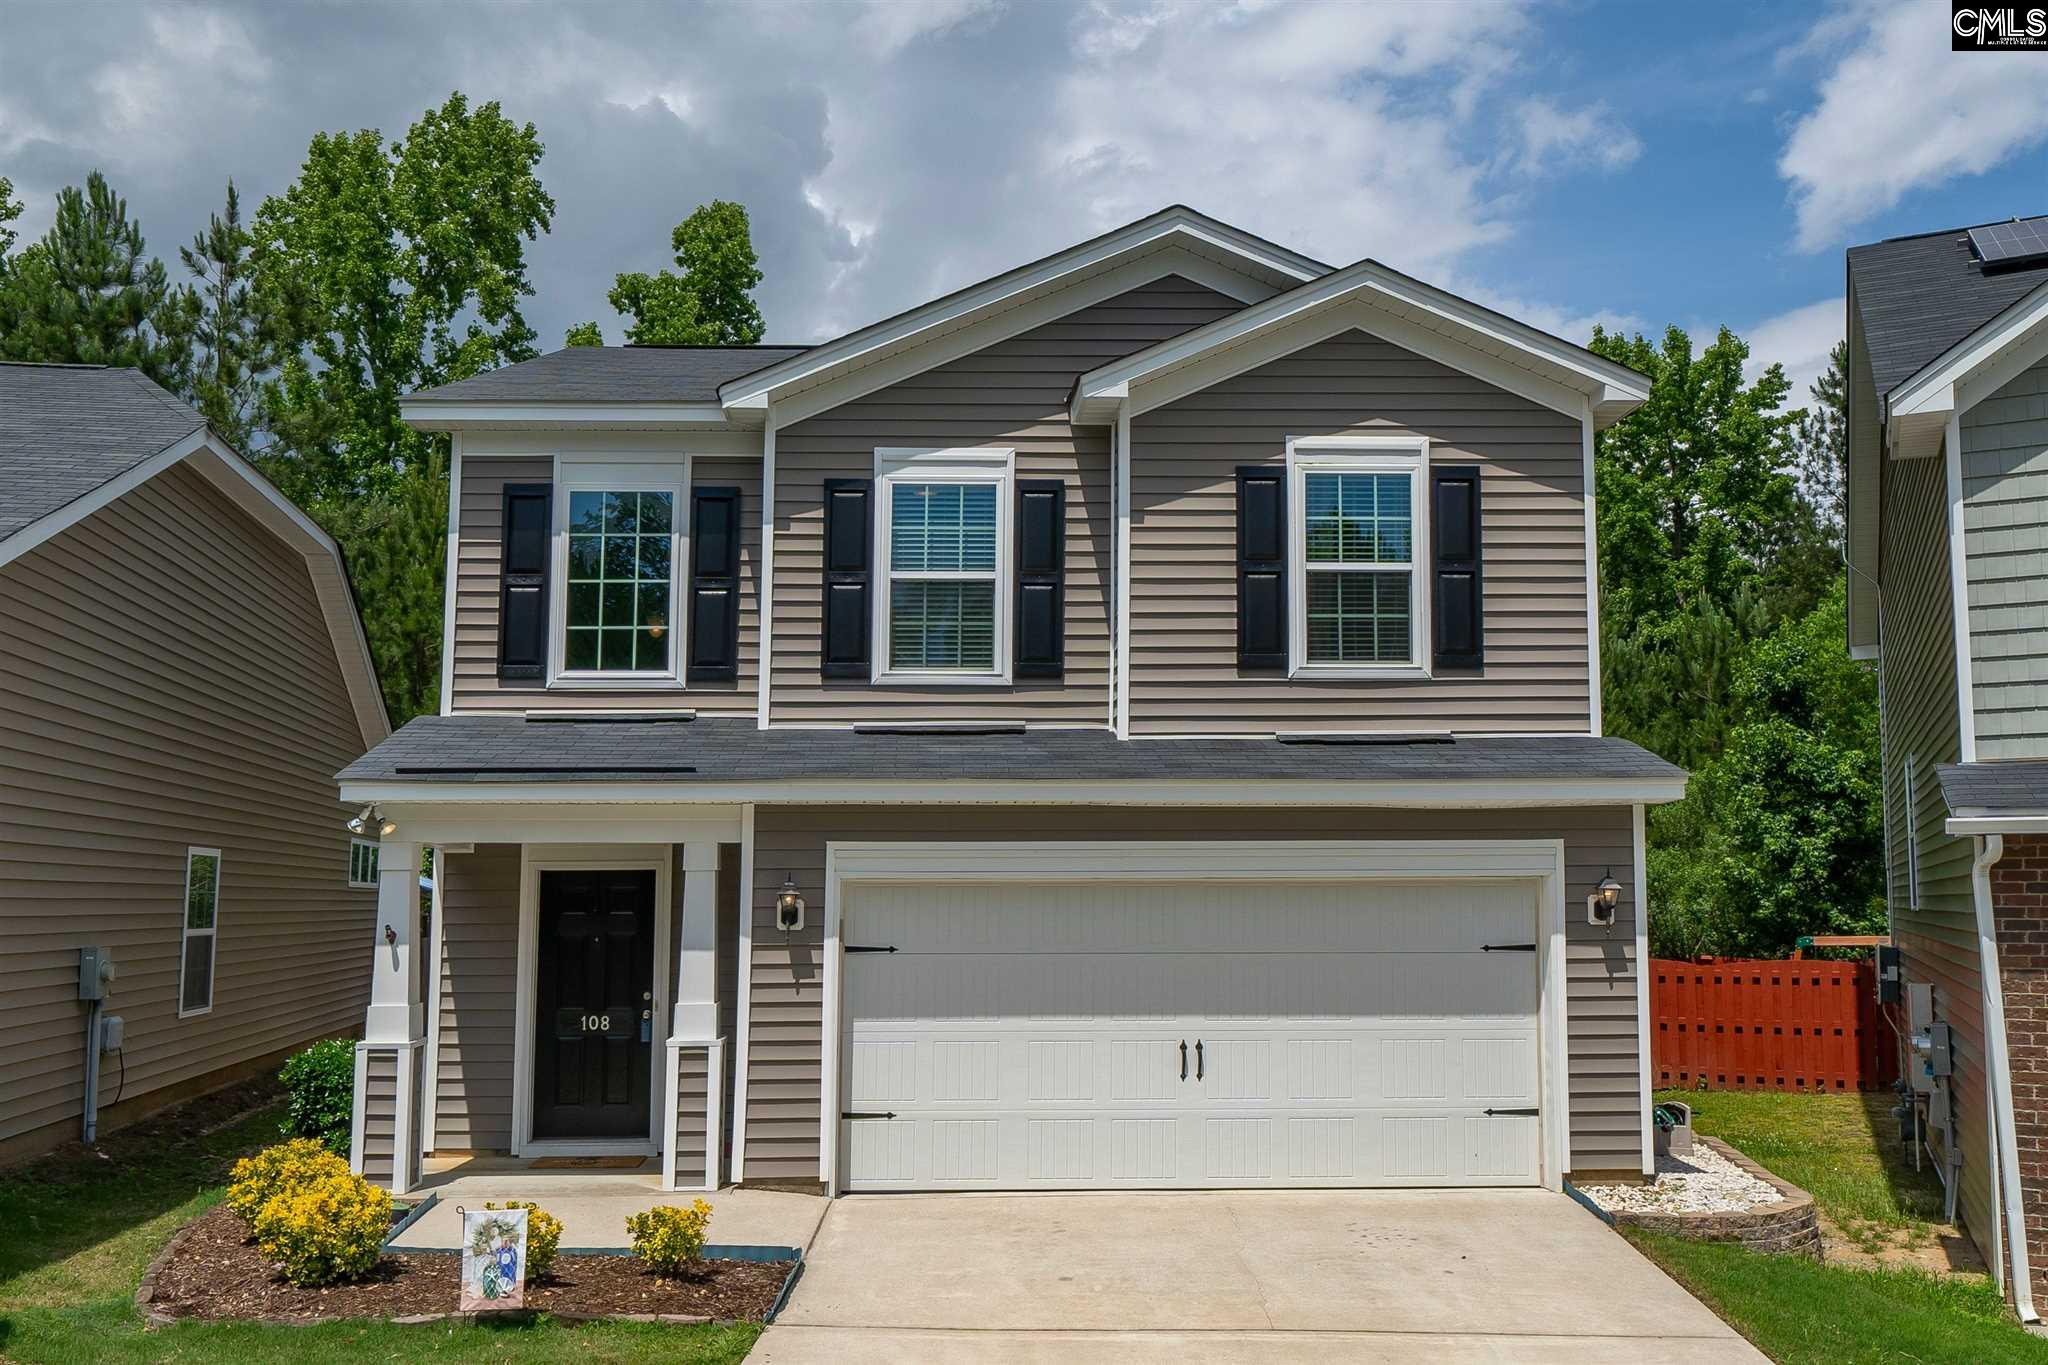 108 Chesterton Lexington, SC 29072